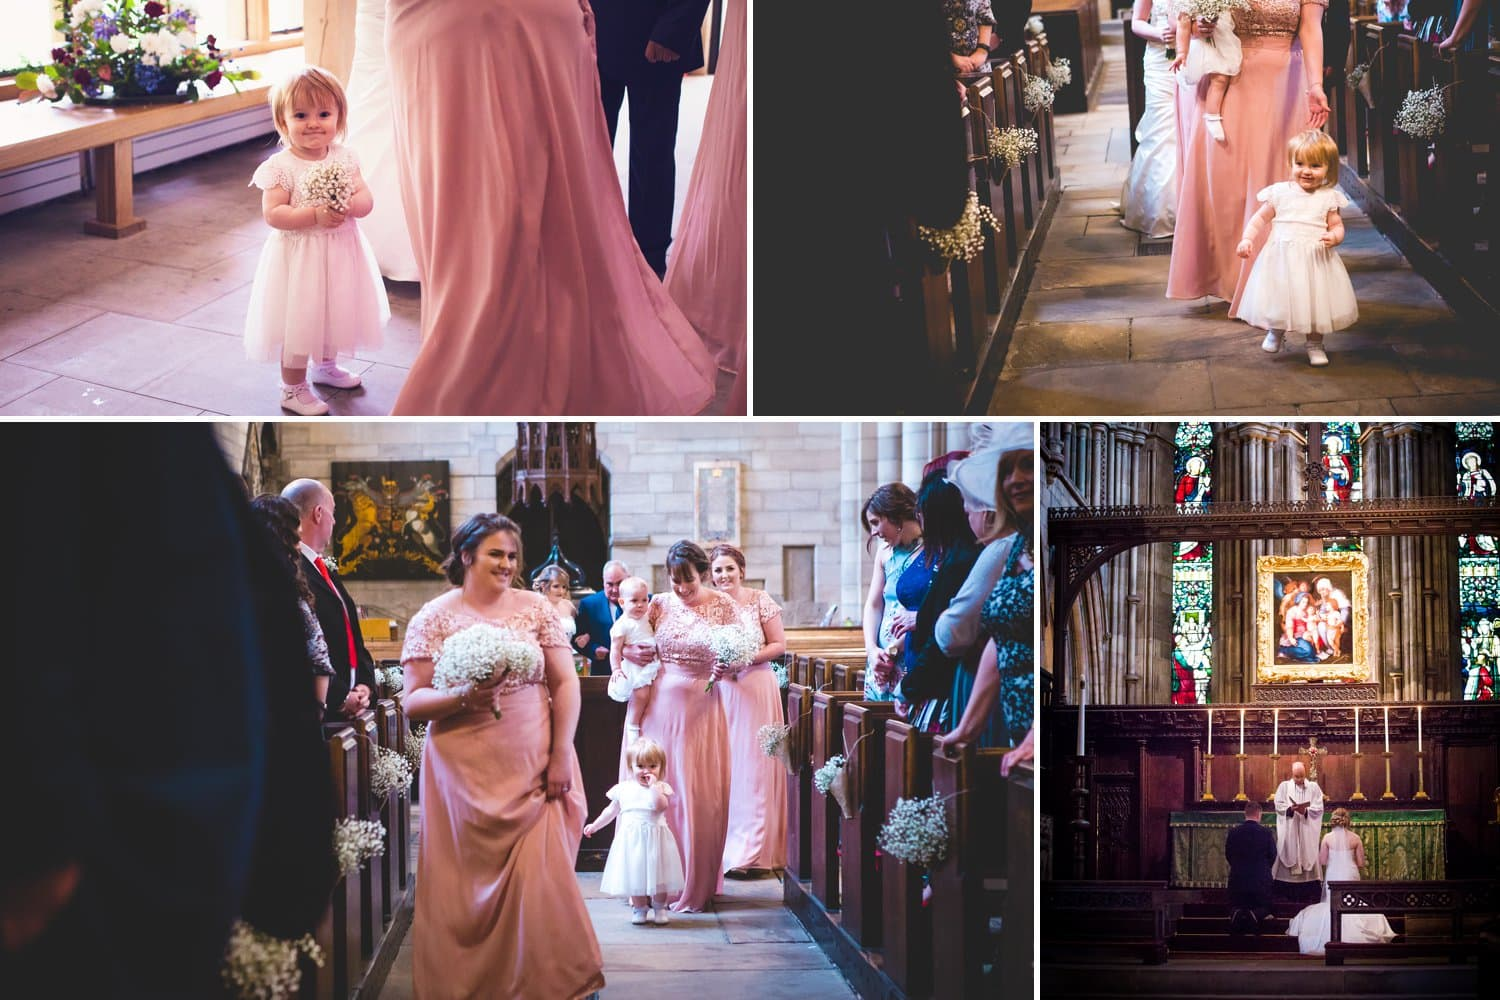 Hexham Abbey Wedding, walking down the aisle